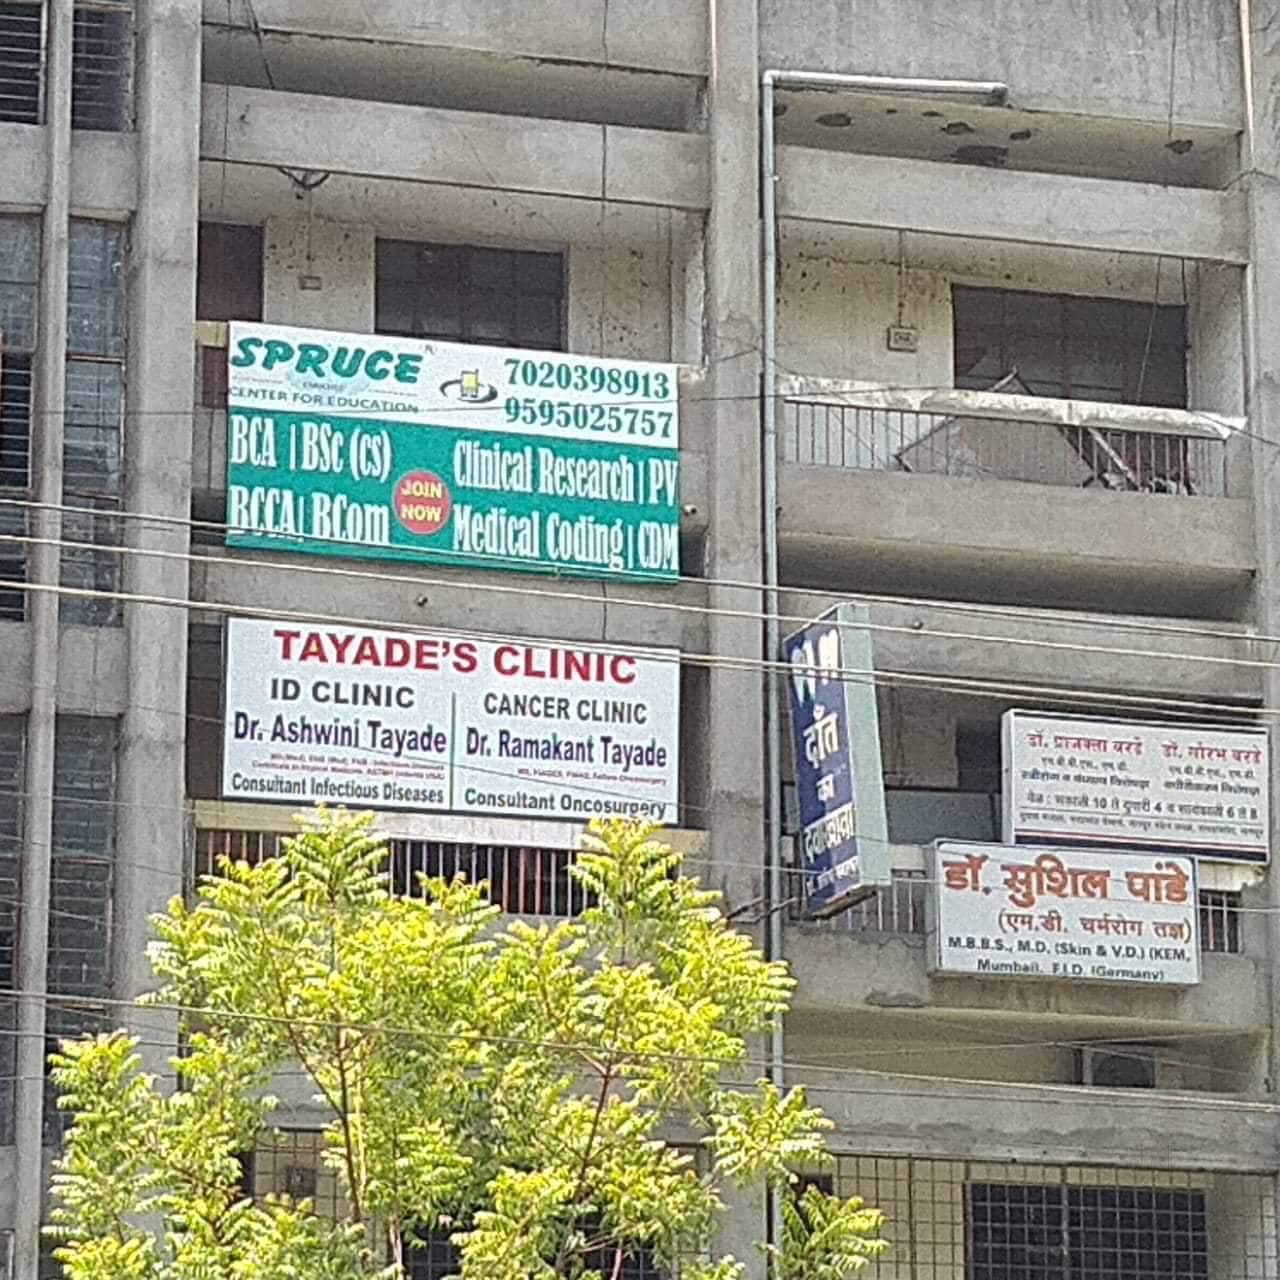 Top 20 Institutes For Clinical Research in Nagpur - Best